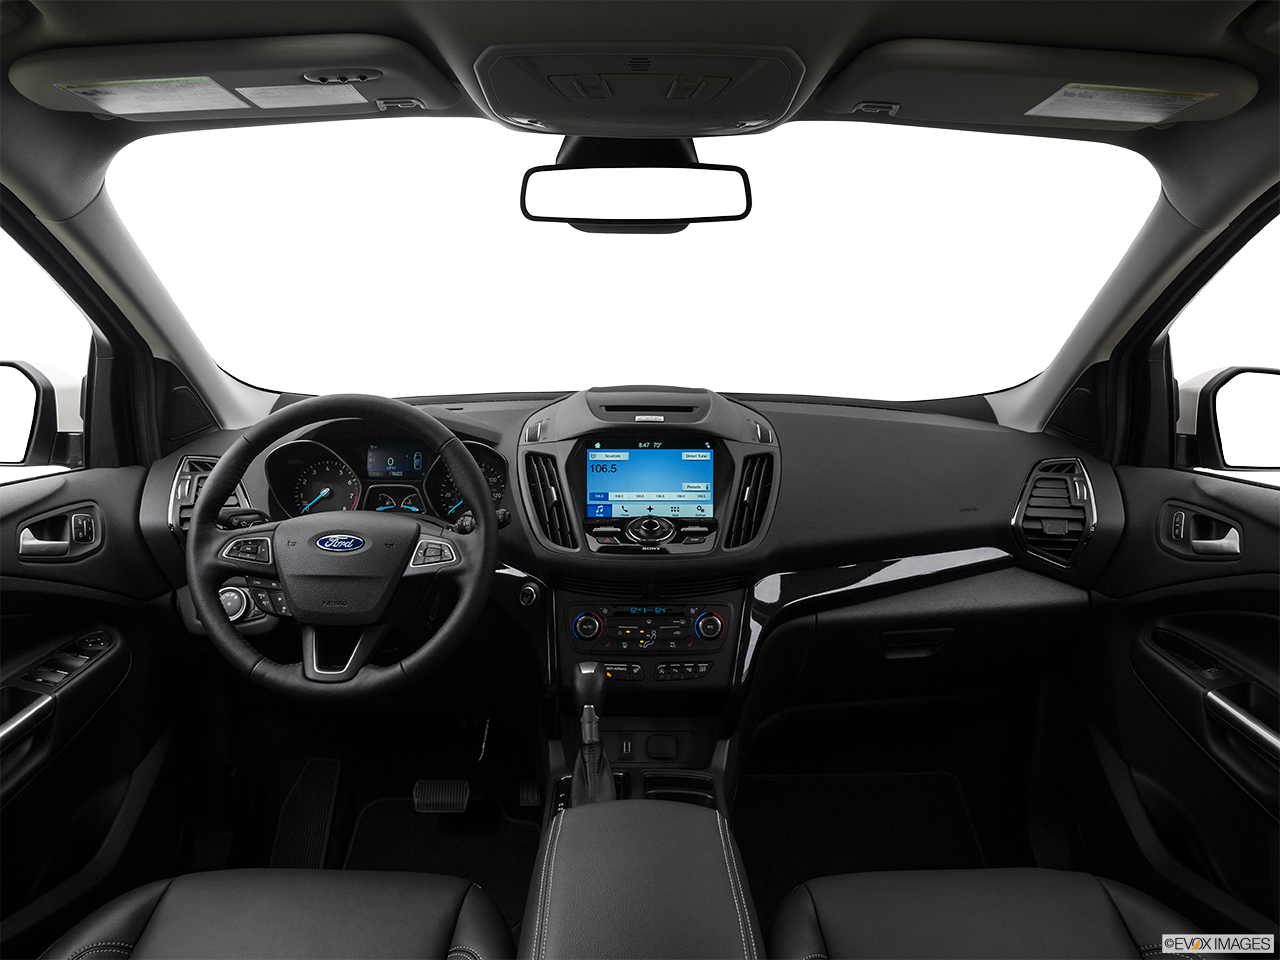 Interior-View-Of-2017-Ford-Escape-in-Los-Angeles